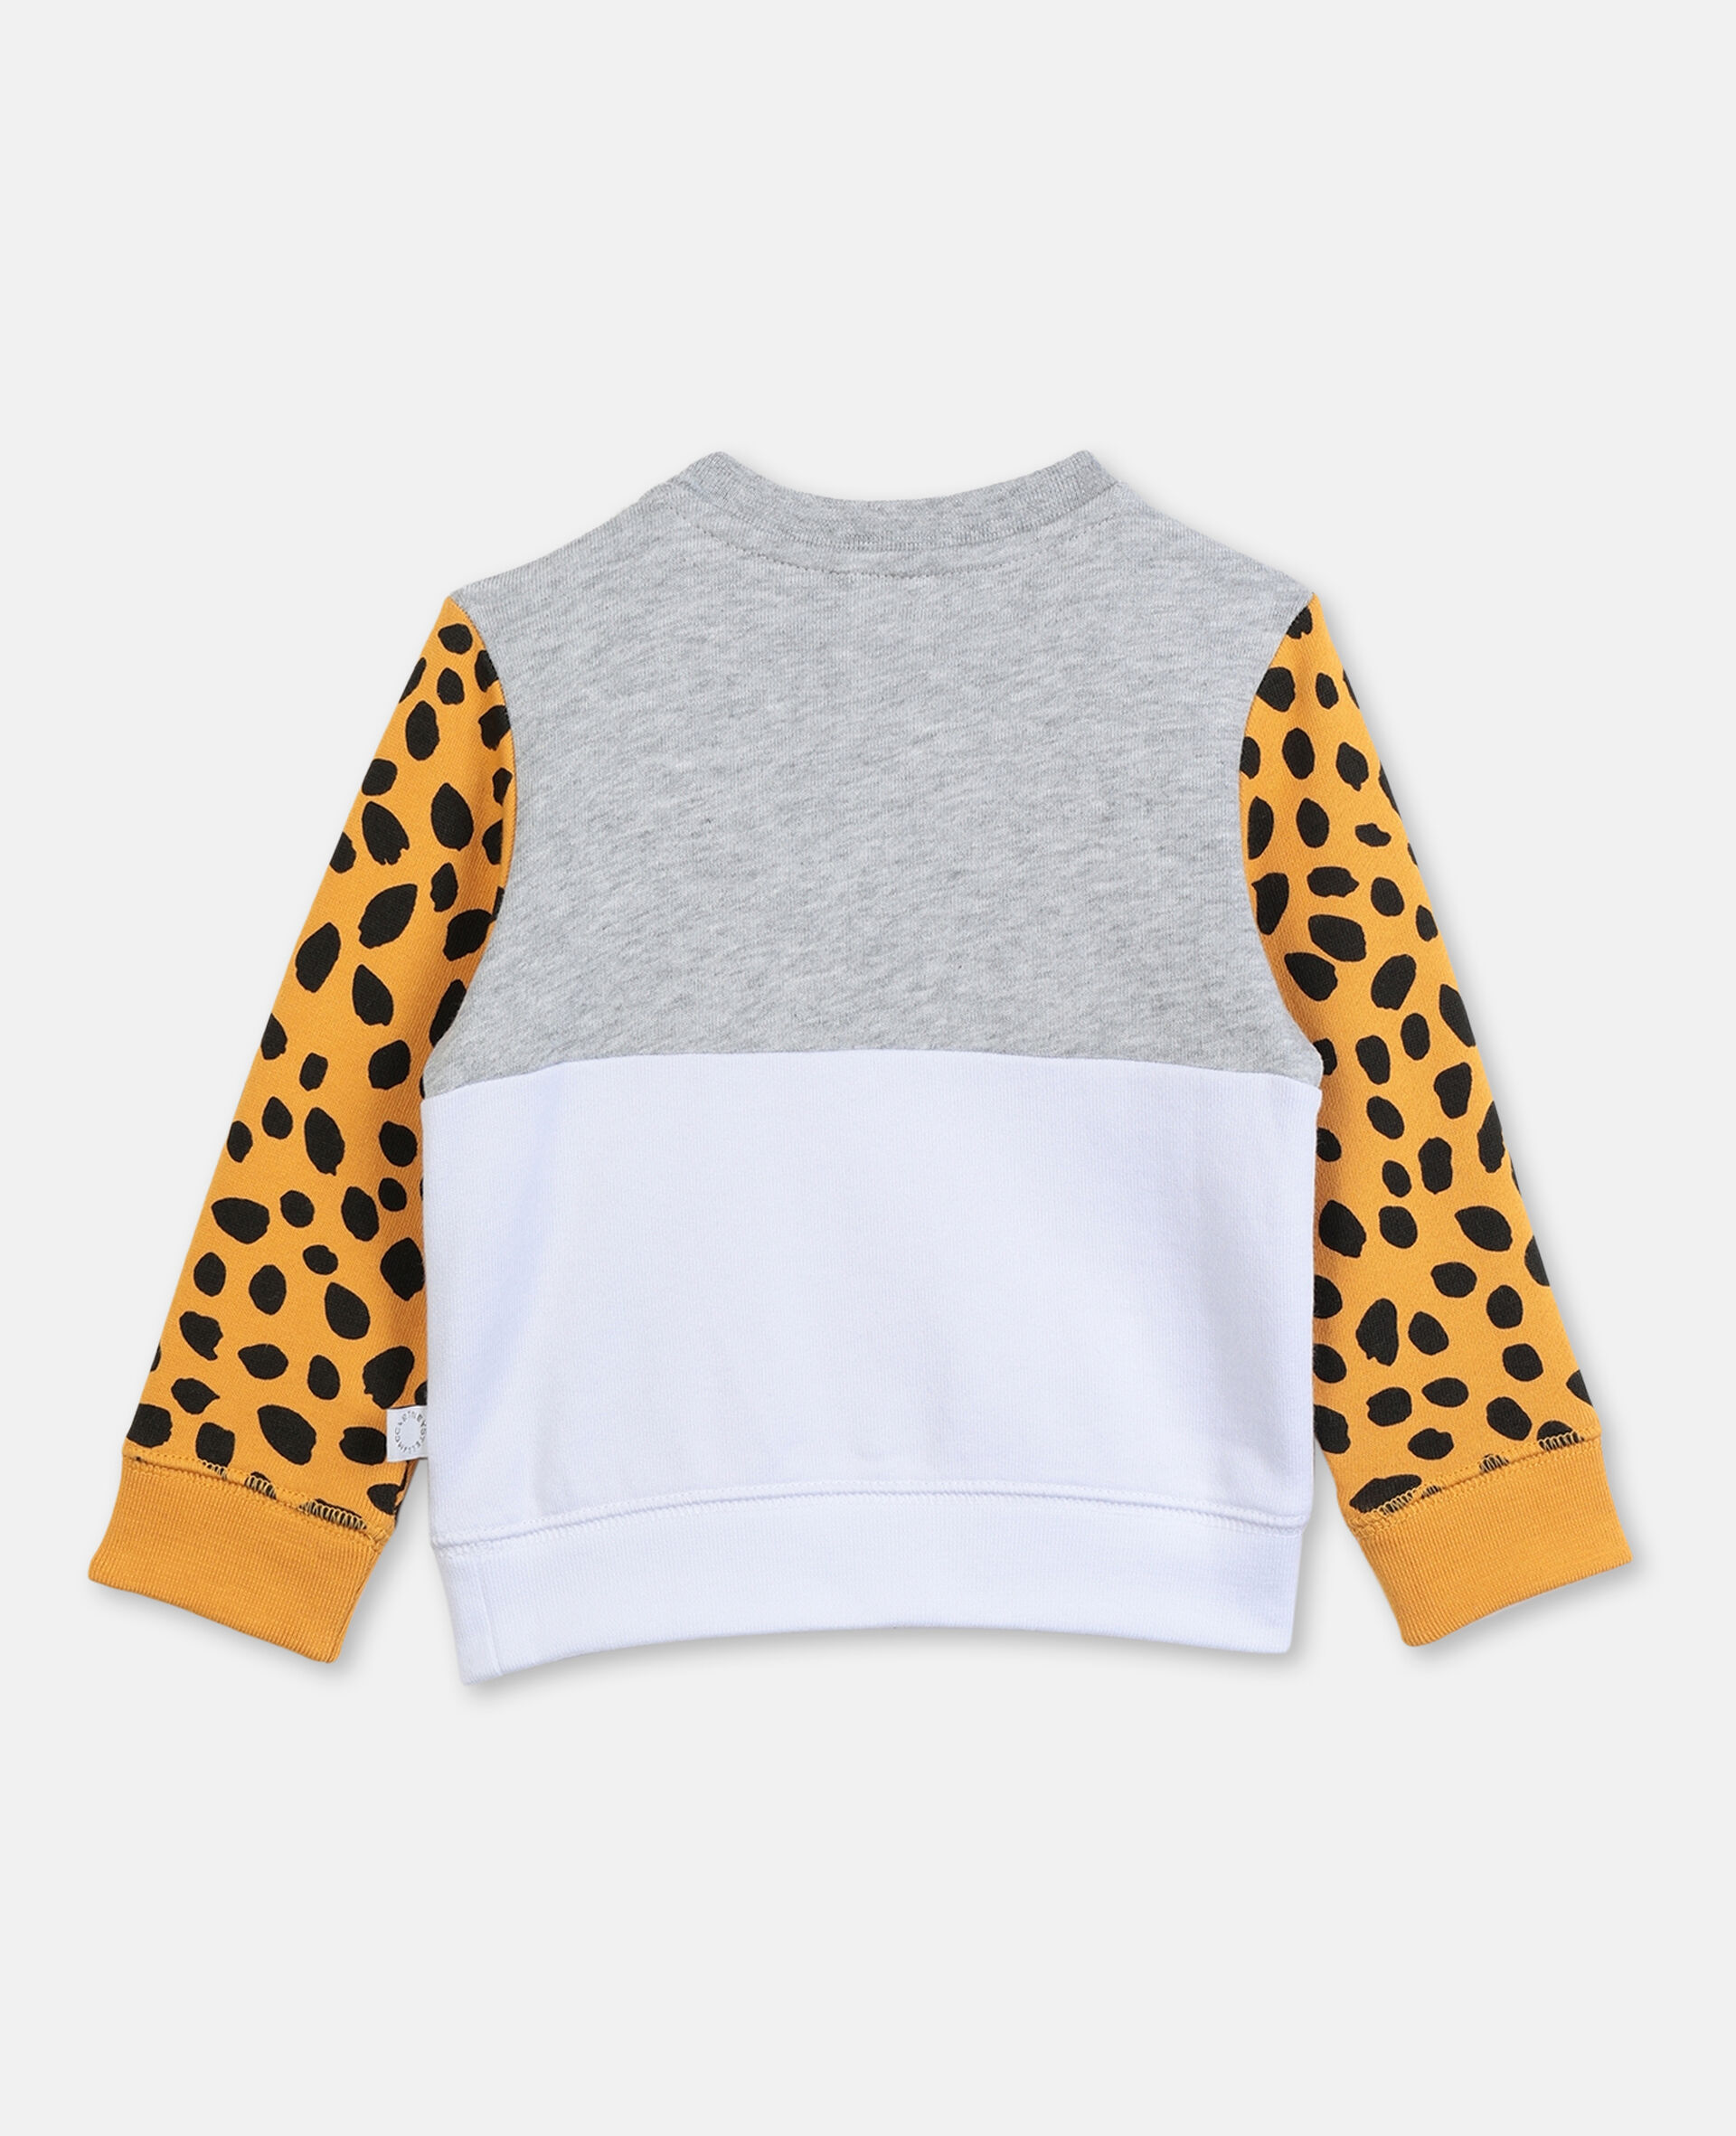 Tiger Cotton Sweatshirt-Grey-large image number 3